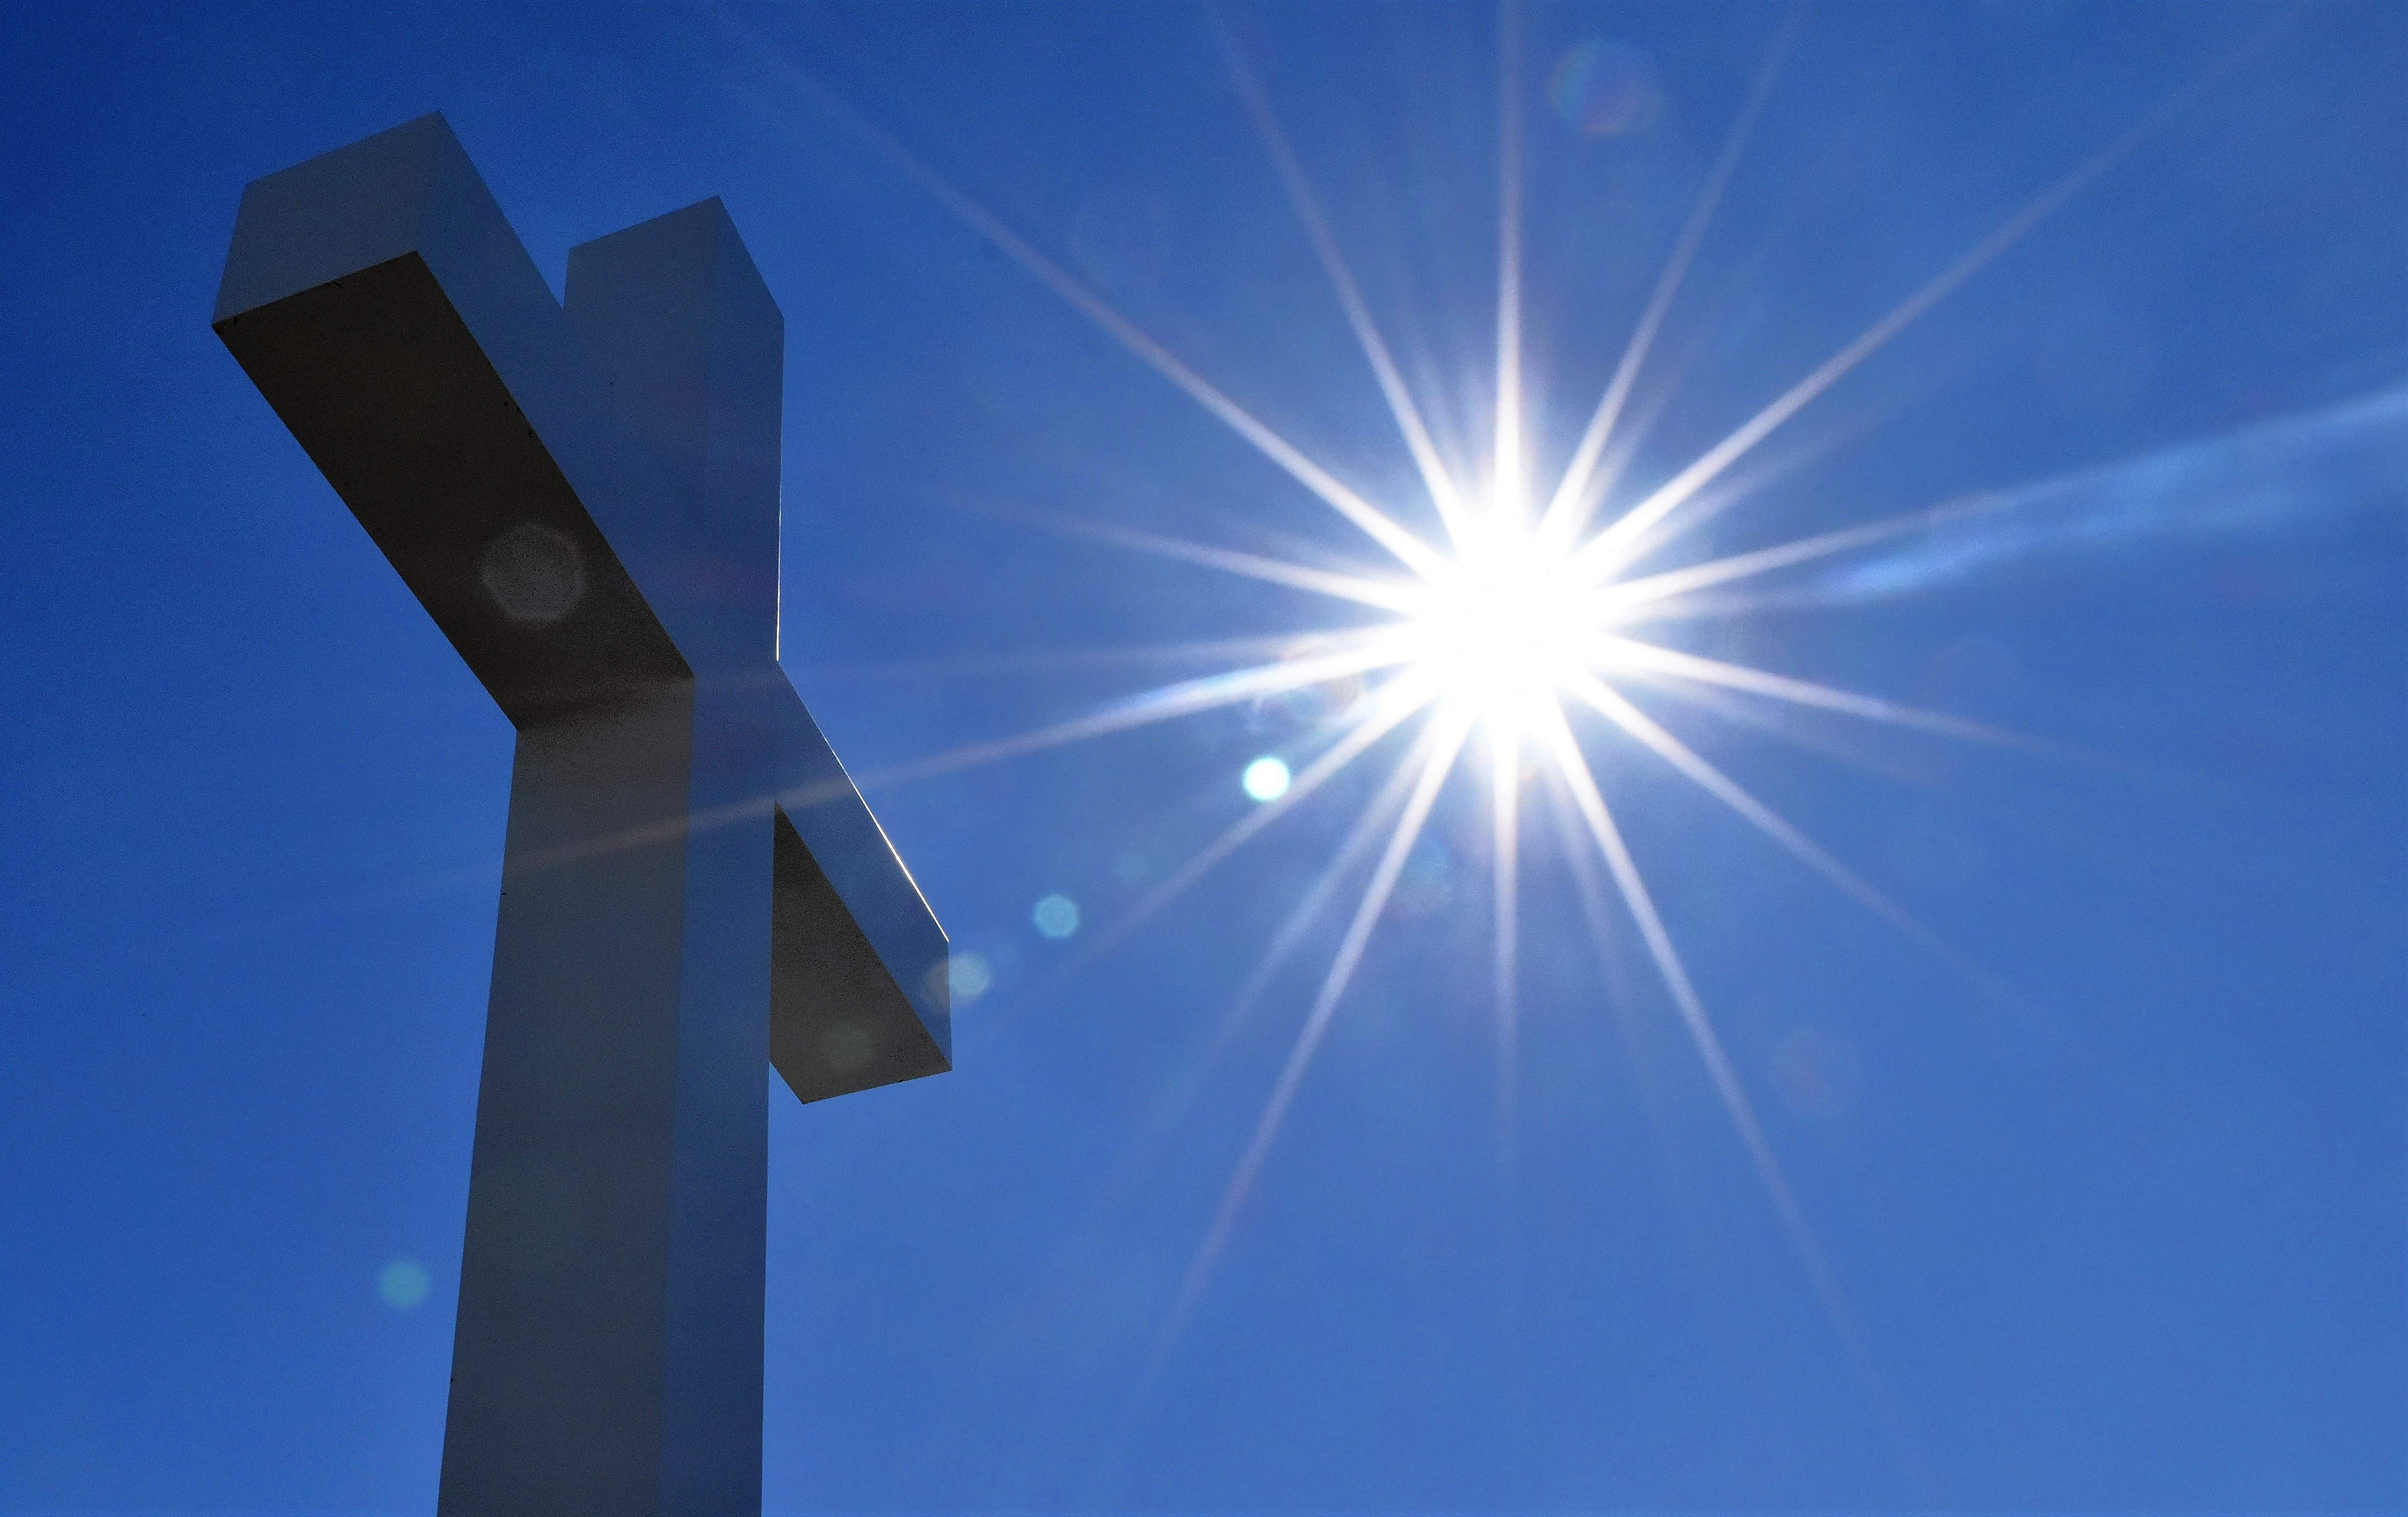 Spirit of Life Christian Church's newly installed cross faces the midday sun. The church's congregation will hold a dedication ceremony for the cross this Sunday.